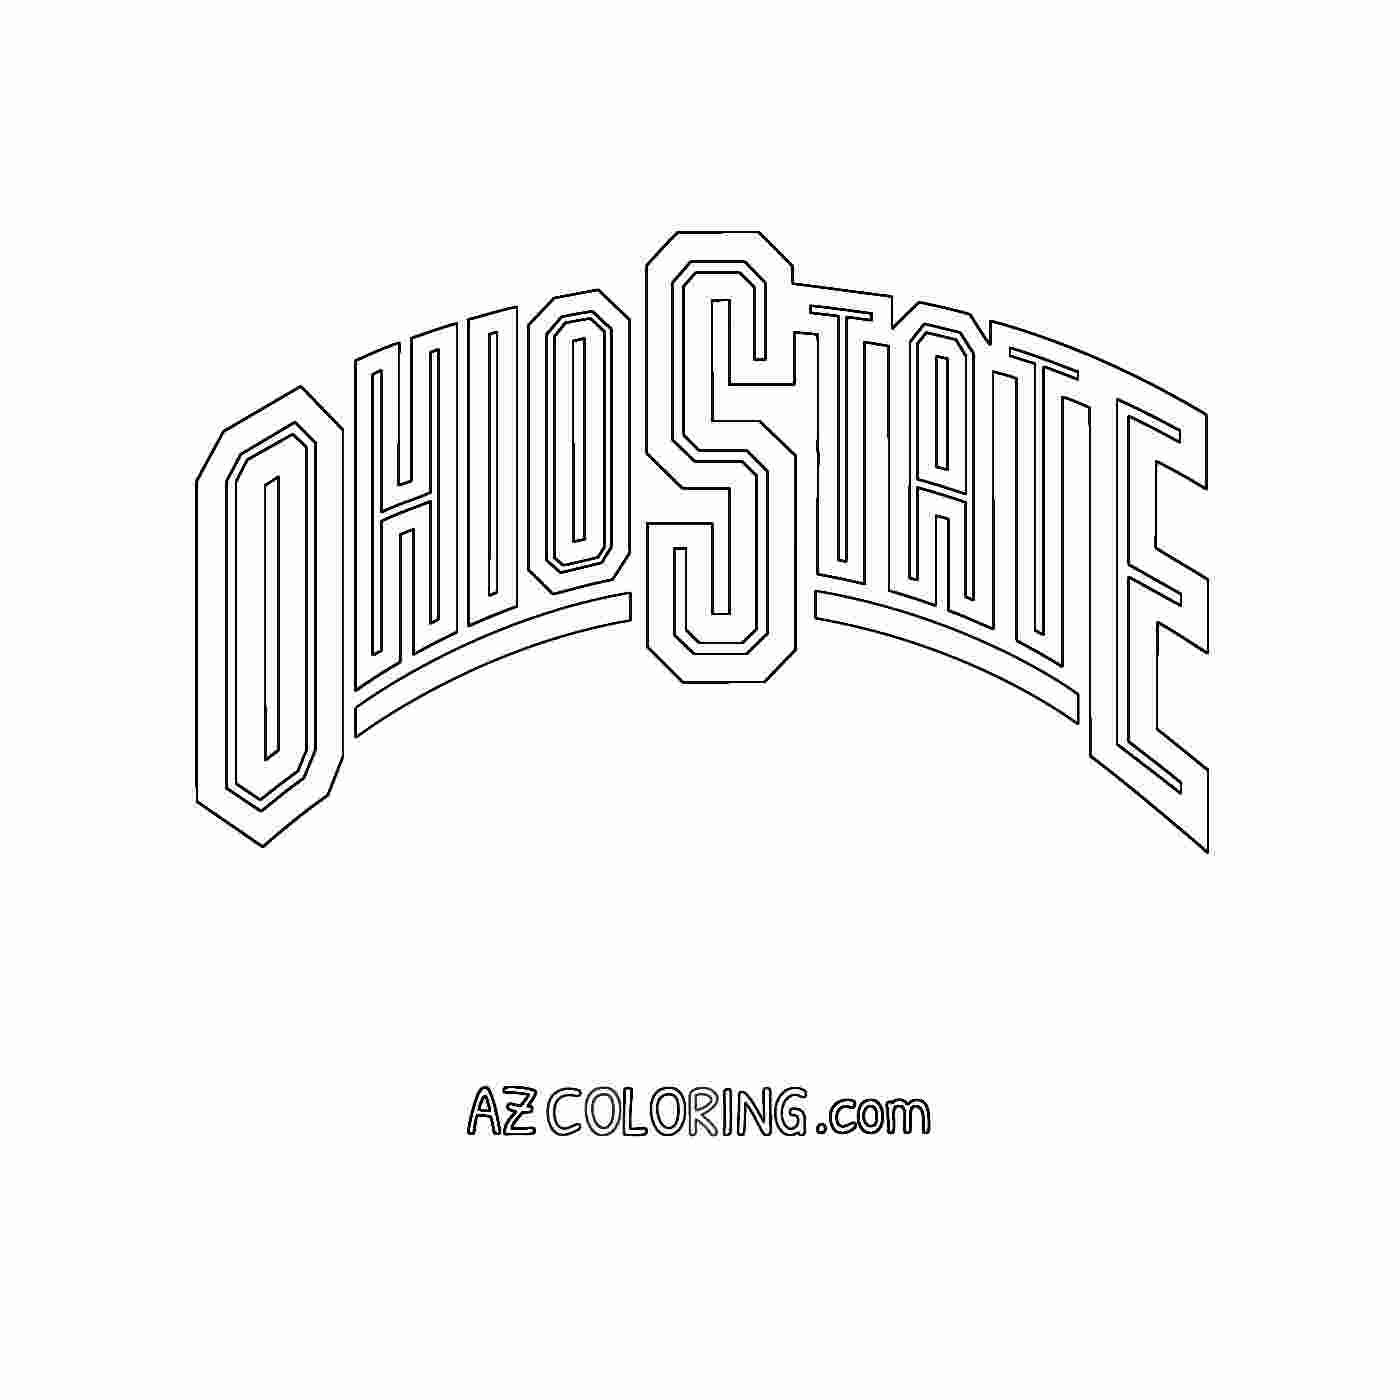 Free Ohio State Coloring Pages In 2020 Ohio State Colors Ohio State Buckeyes Ohio State